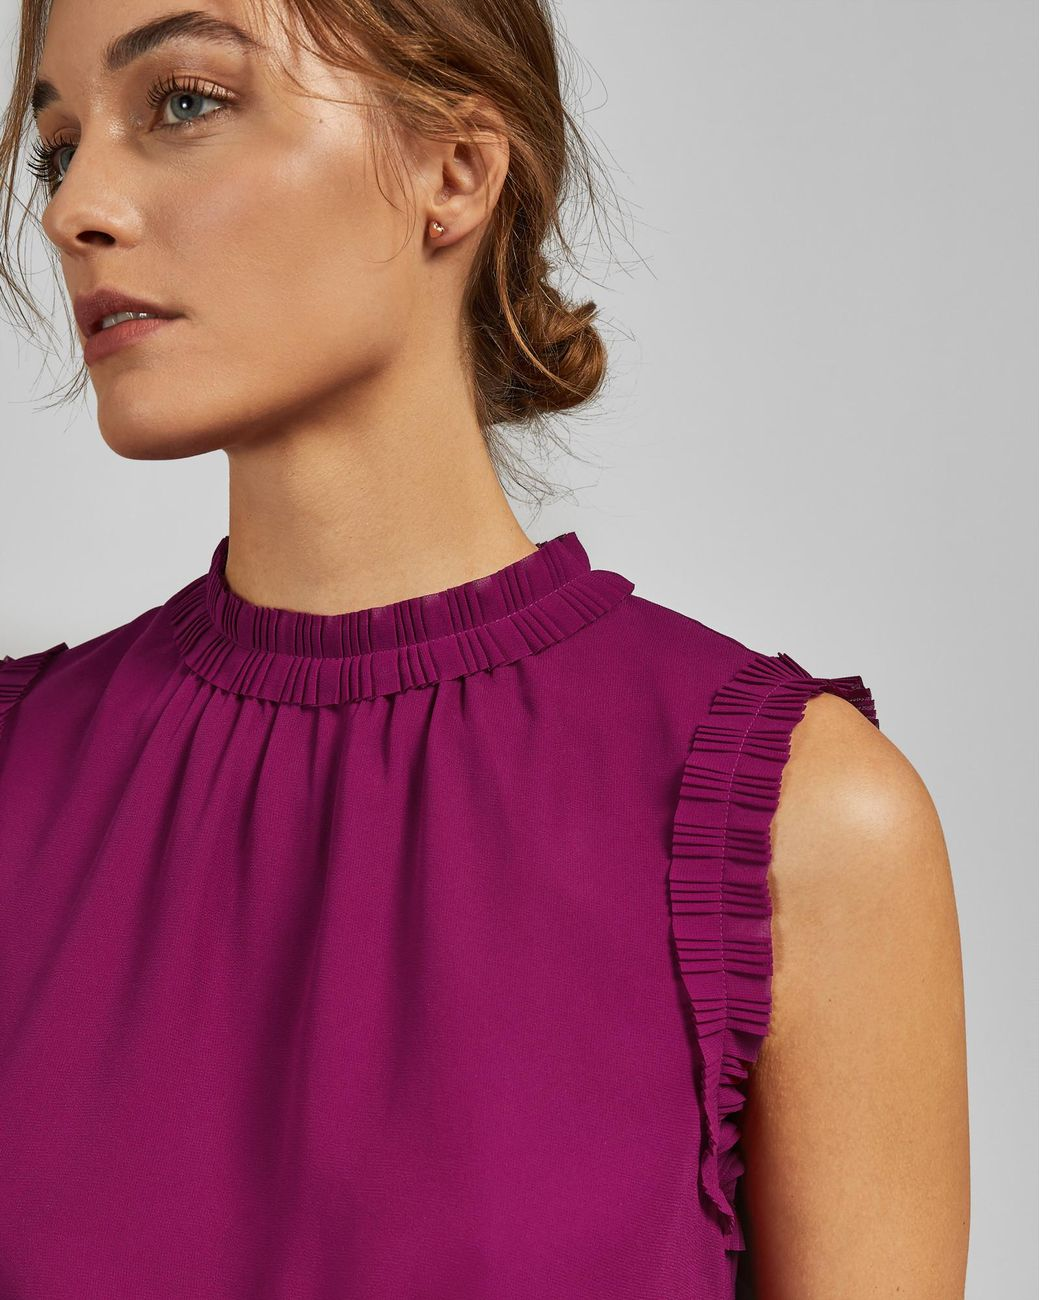 e5f468c62ce3c Ted Baker Tie Waist Pleated Top in Pink - Lyst